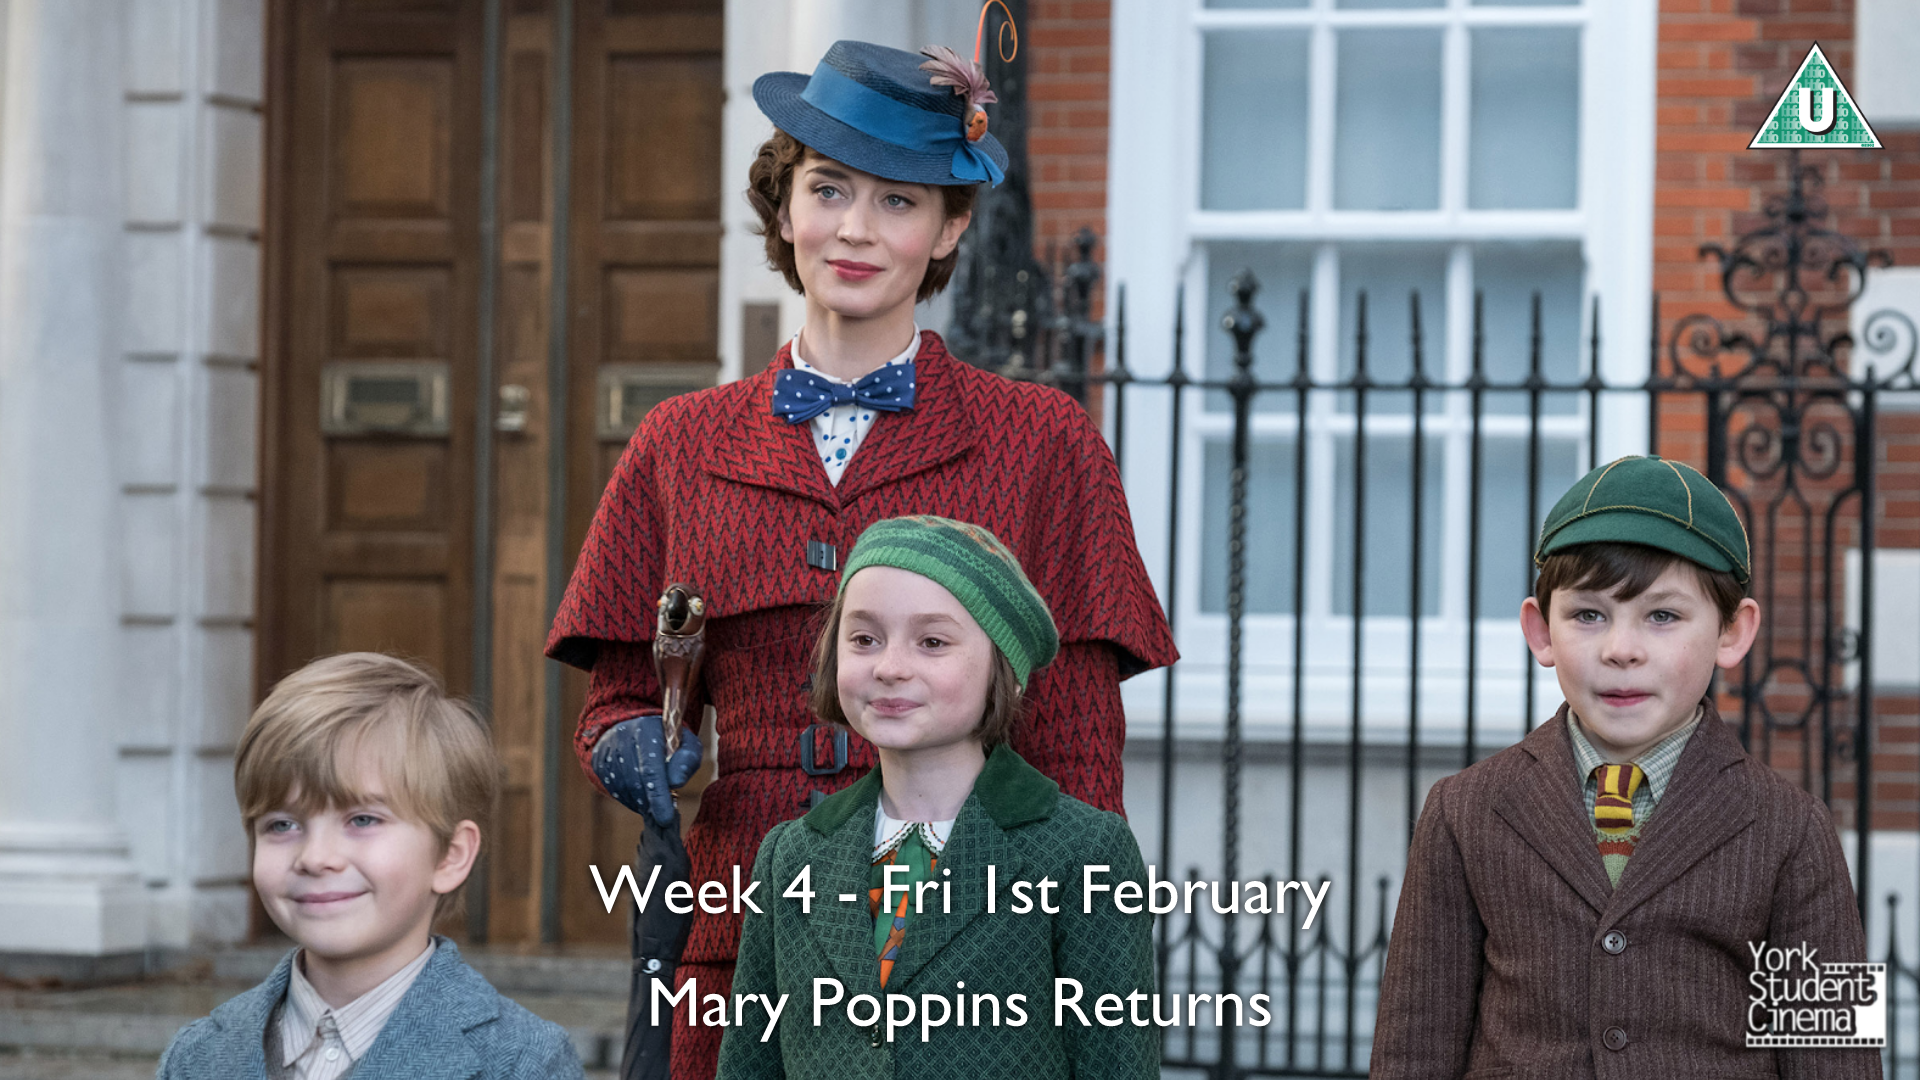 YSC Screening of Mary Poppins Returns